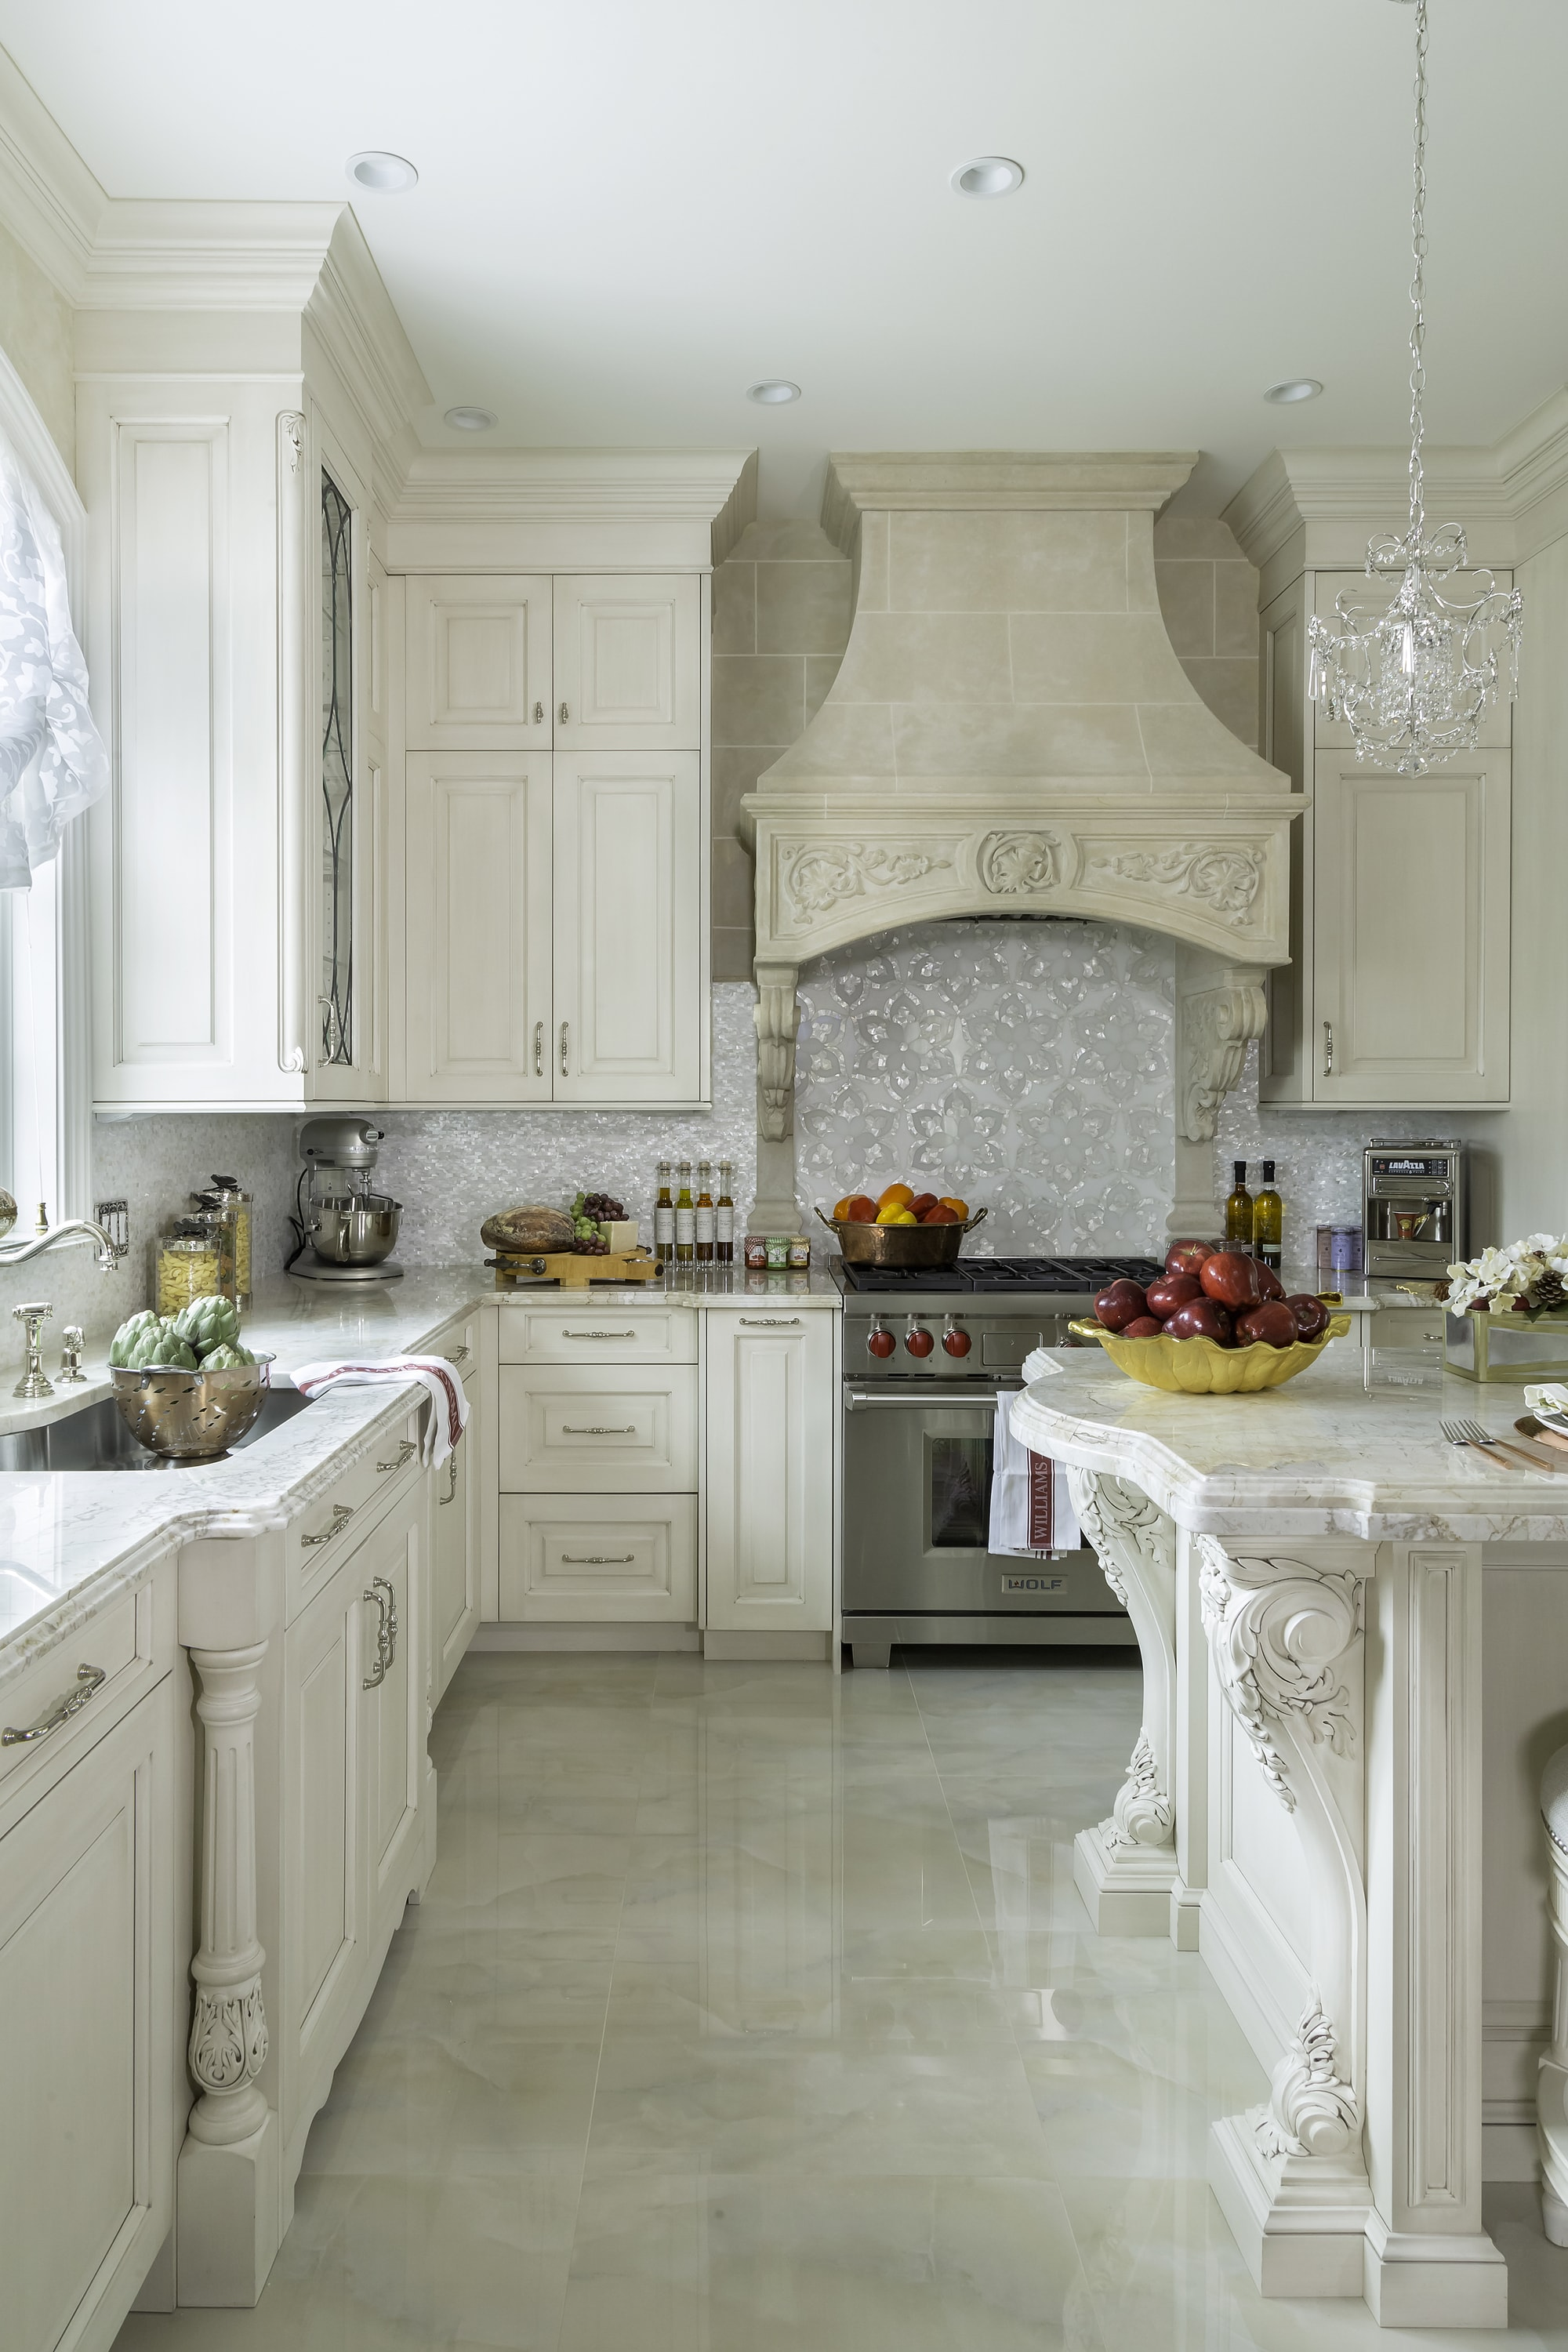 Traditional style kitchen with plenty of cabinets and drawers